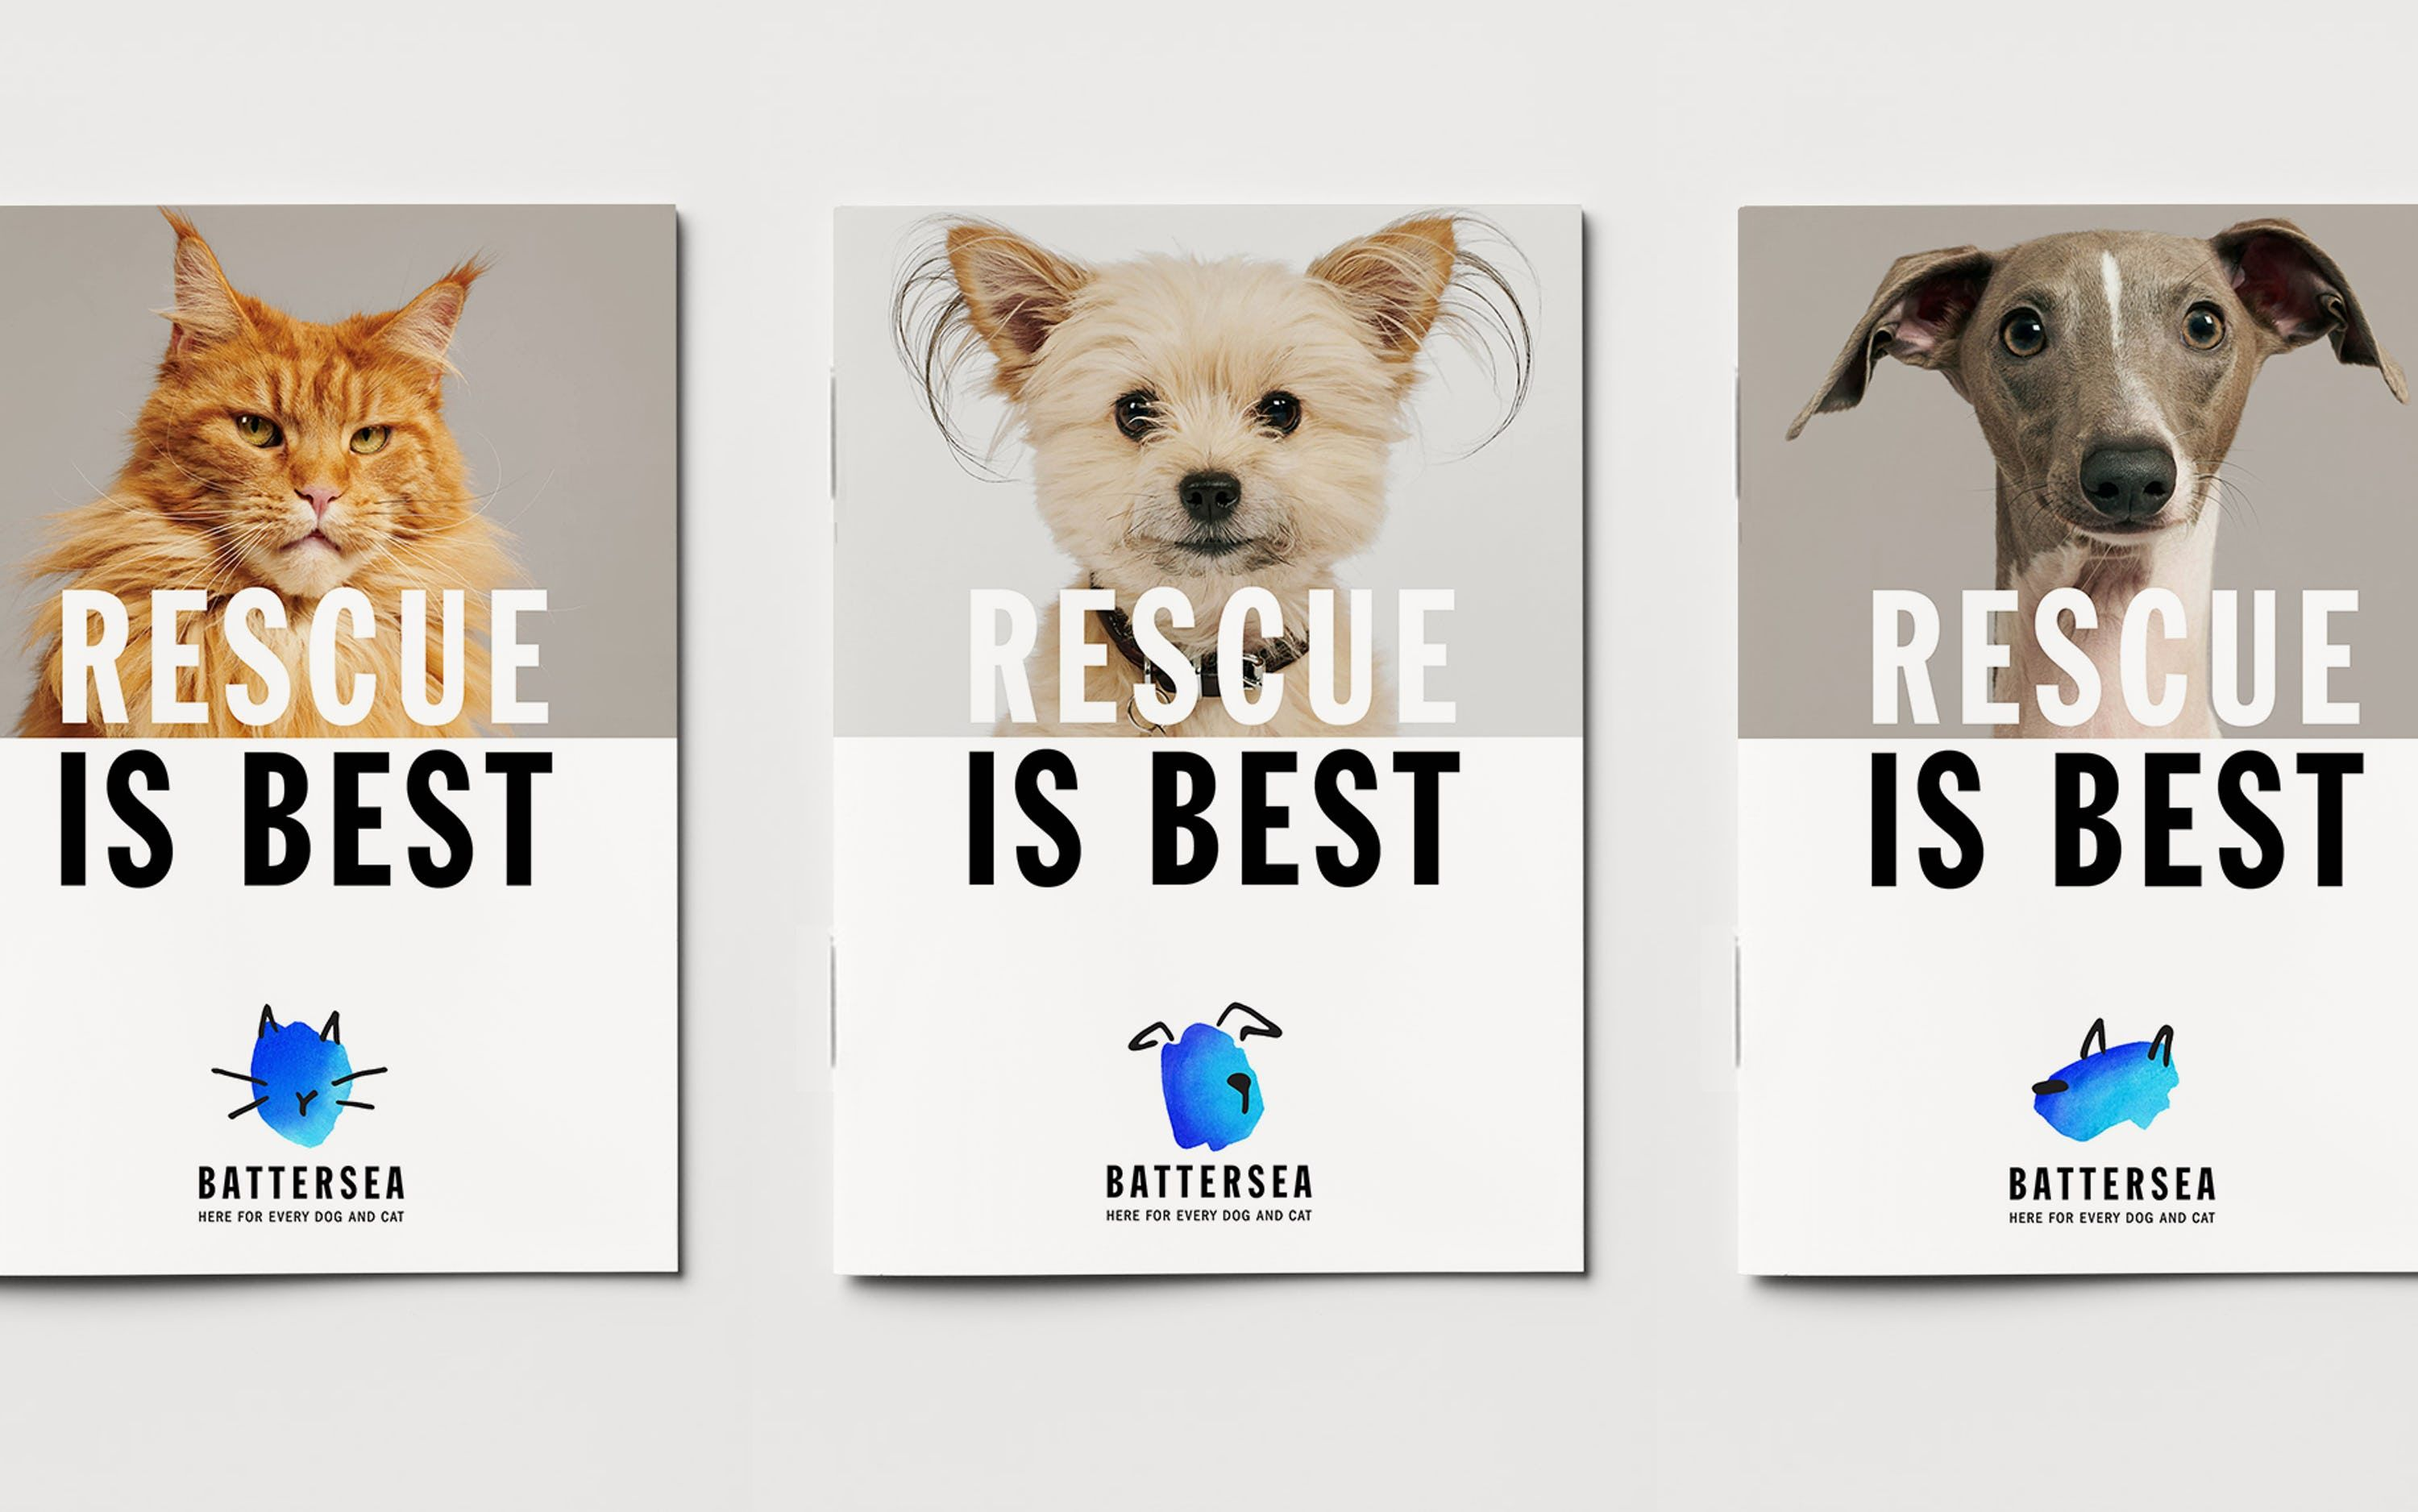 Battersea Brand Strategy Tone Of Voice And Visual Identity For One Of Britain S Oldest And Most Famous A In 2020 Pentagram Design Animal Rescue Logo Battersea Dogs